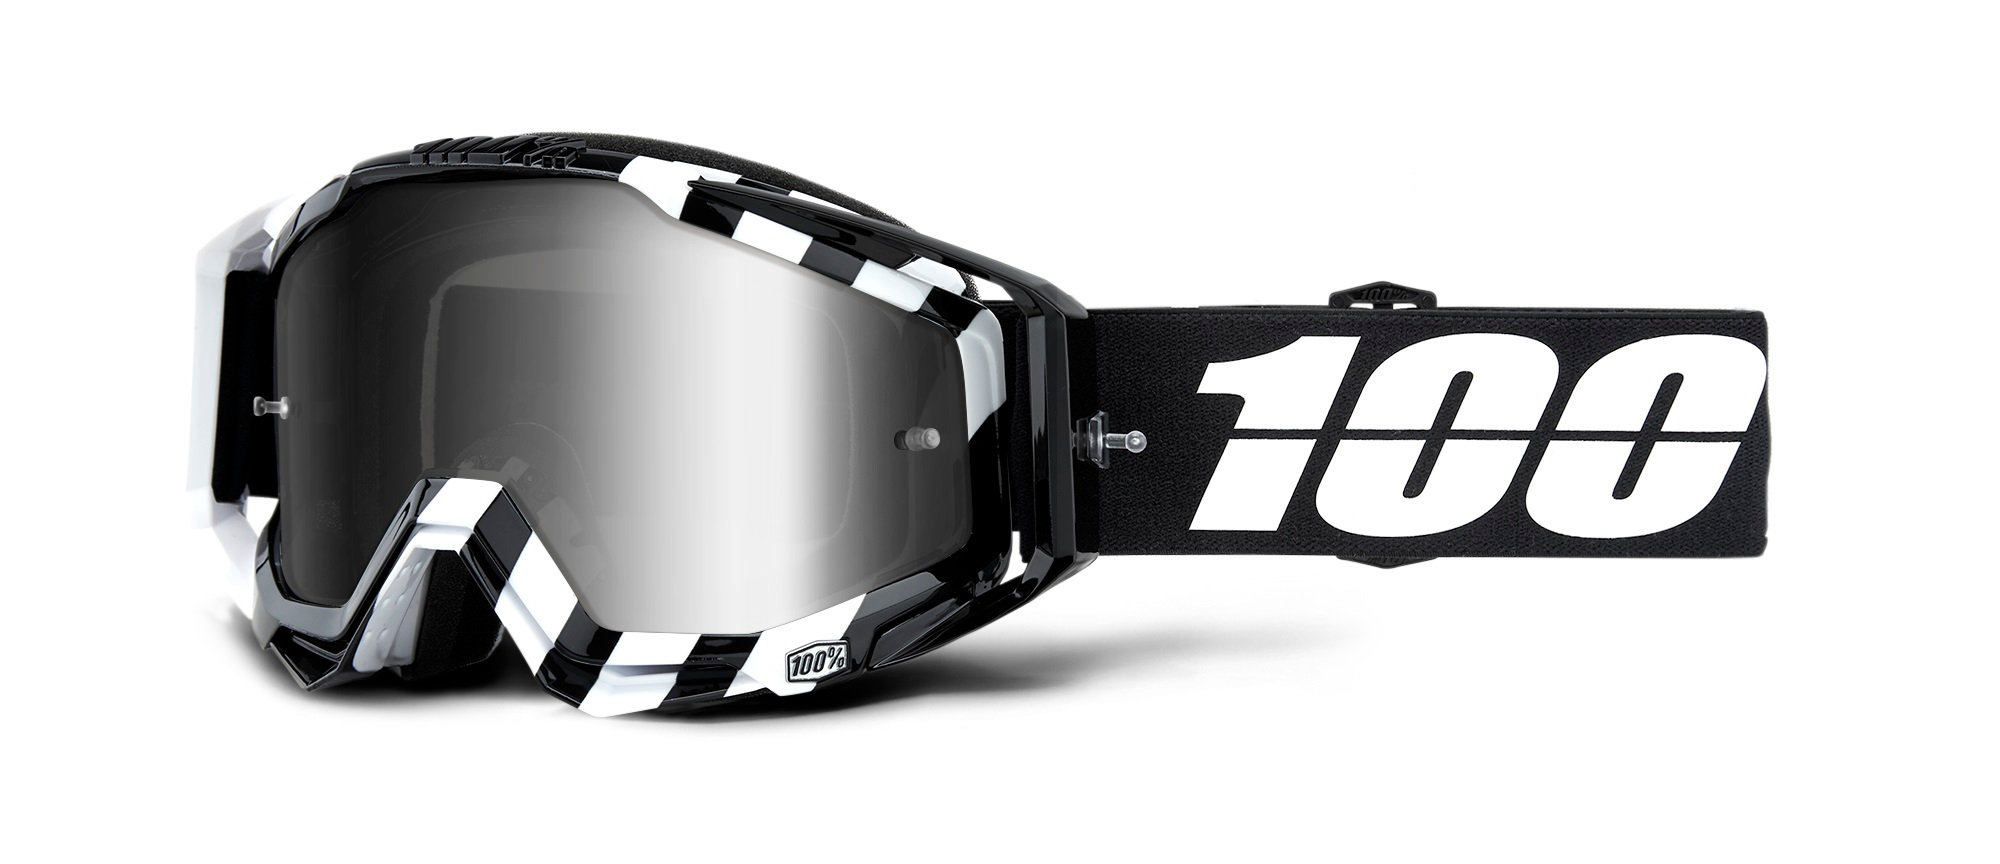 100 Percent Racecraft Goggles Attack Yellow/red Mirrored Lens